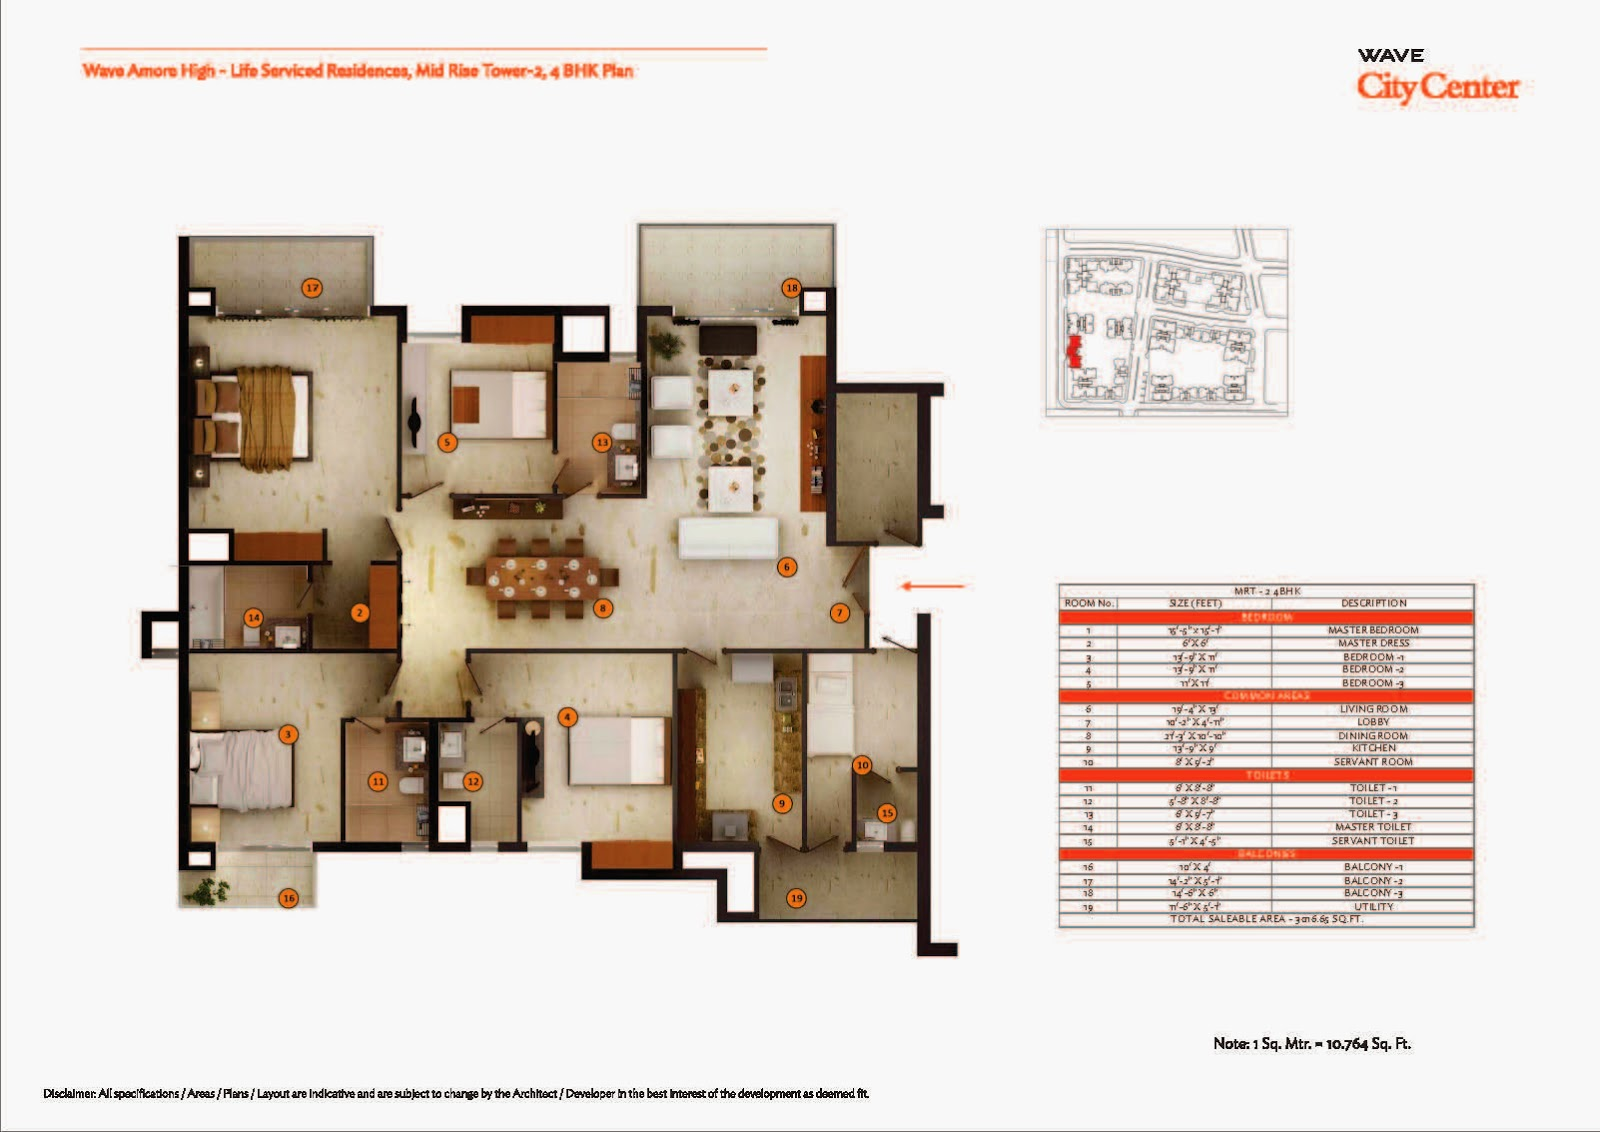 Mid Rise Tower 2,4 BHK Plan